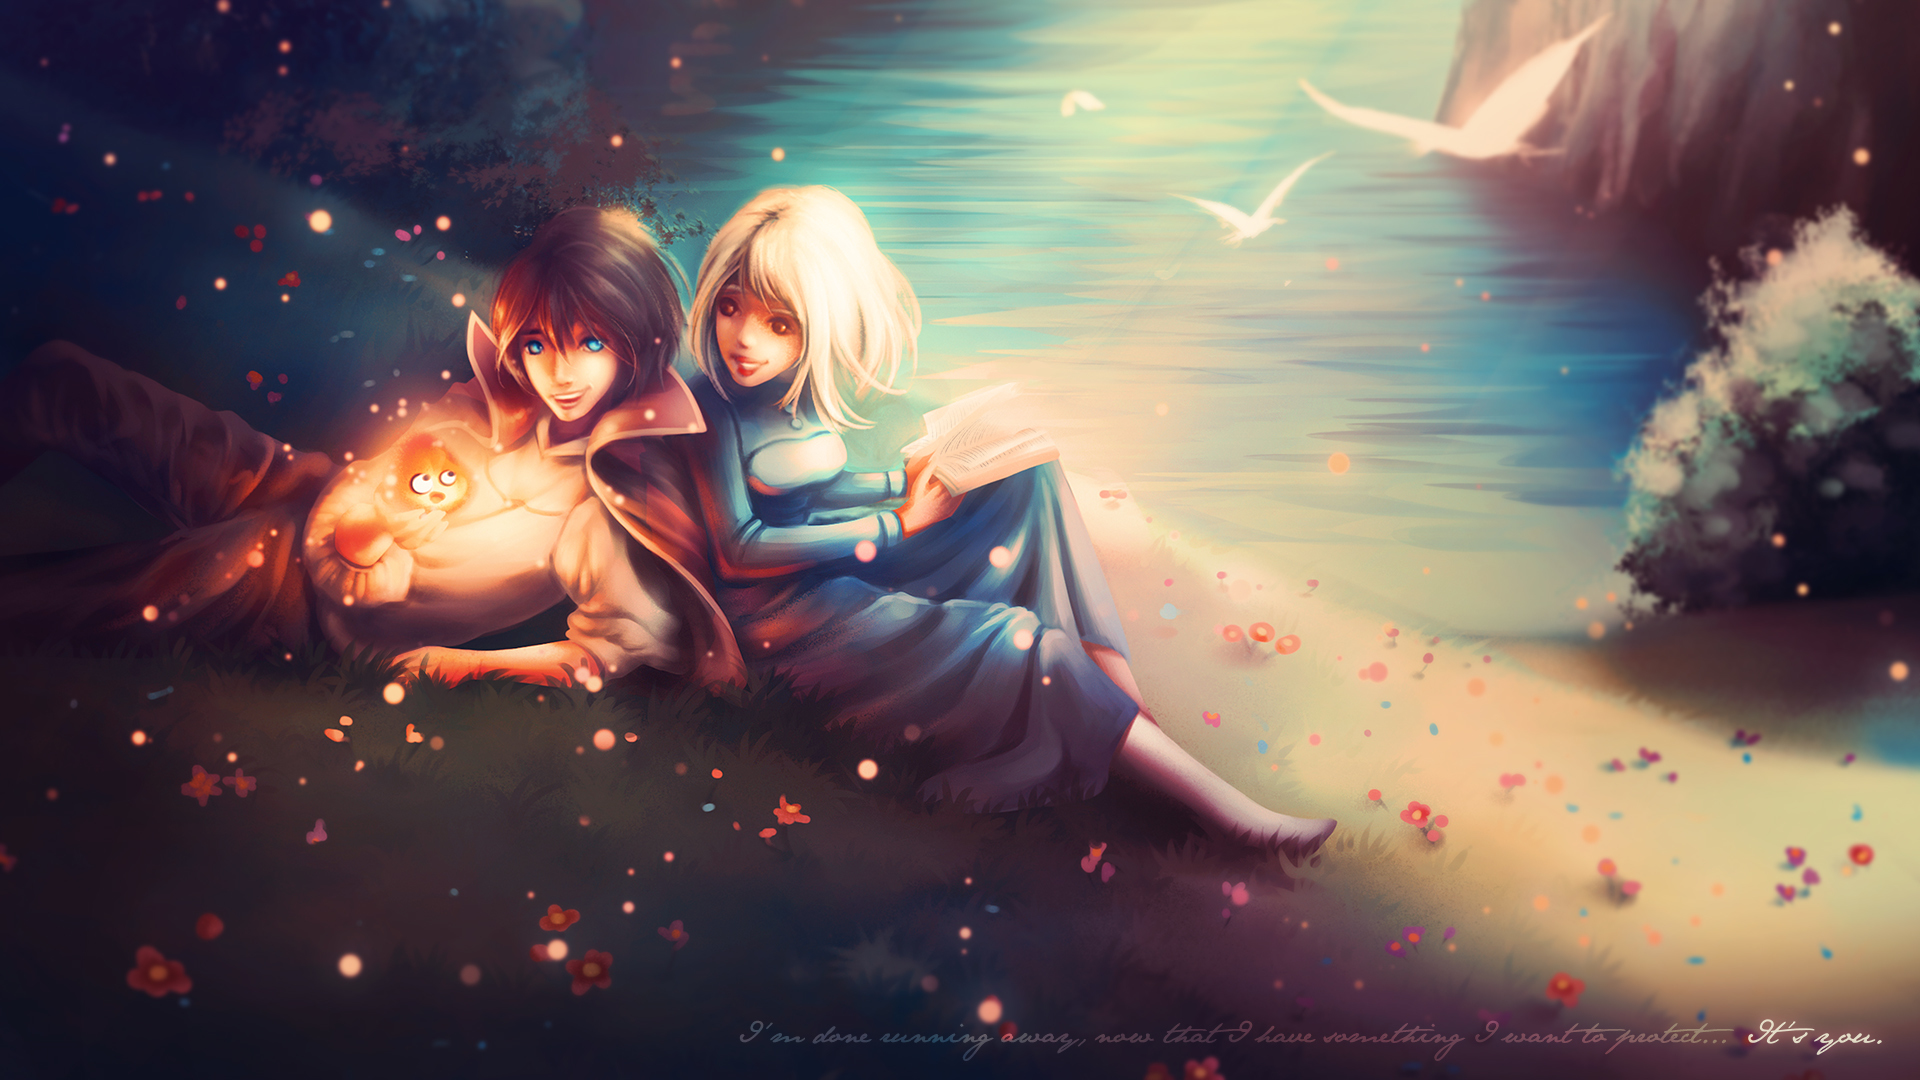 Image Young Man Howl S Moving Castle Howl Sophie 2 Anime 1920x1080